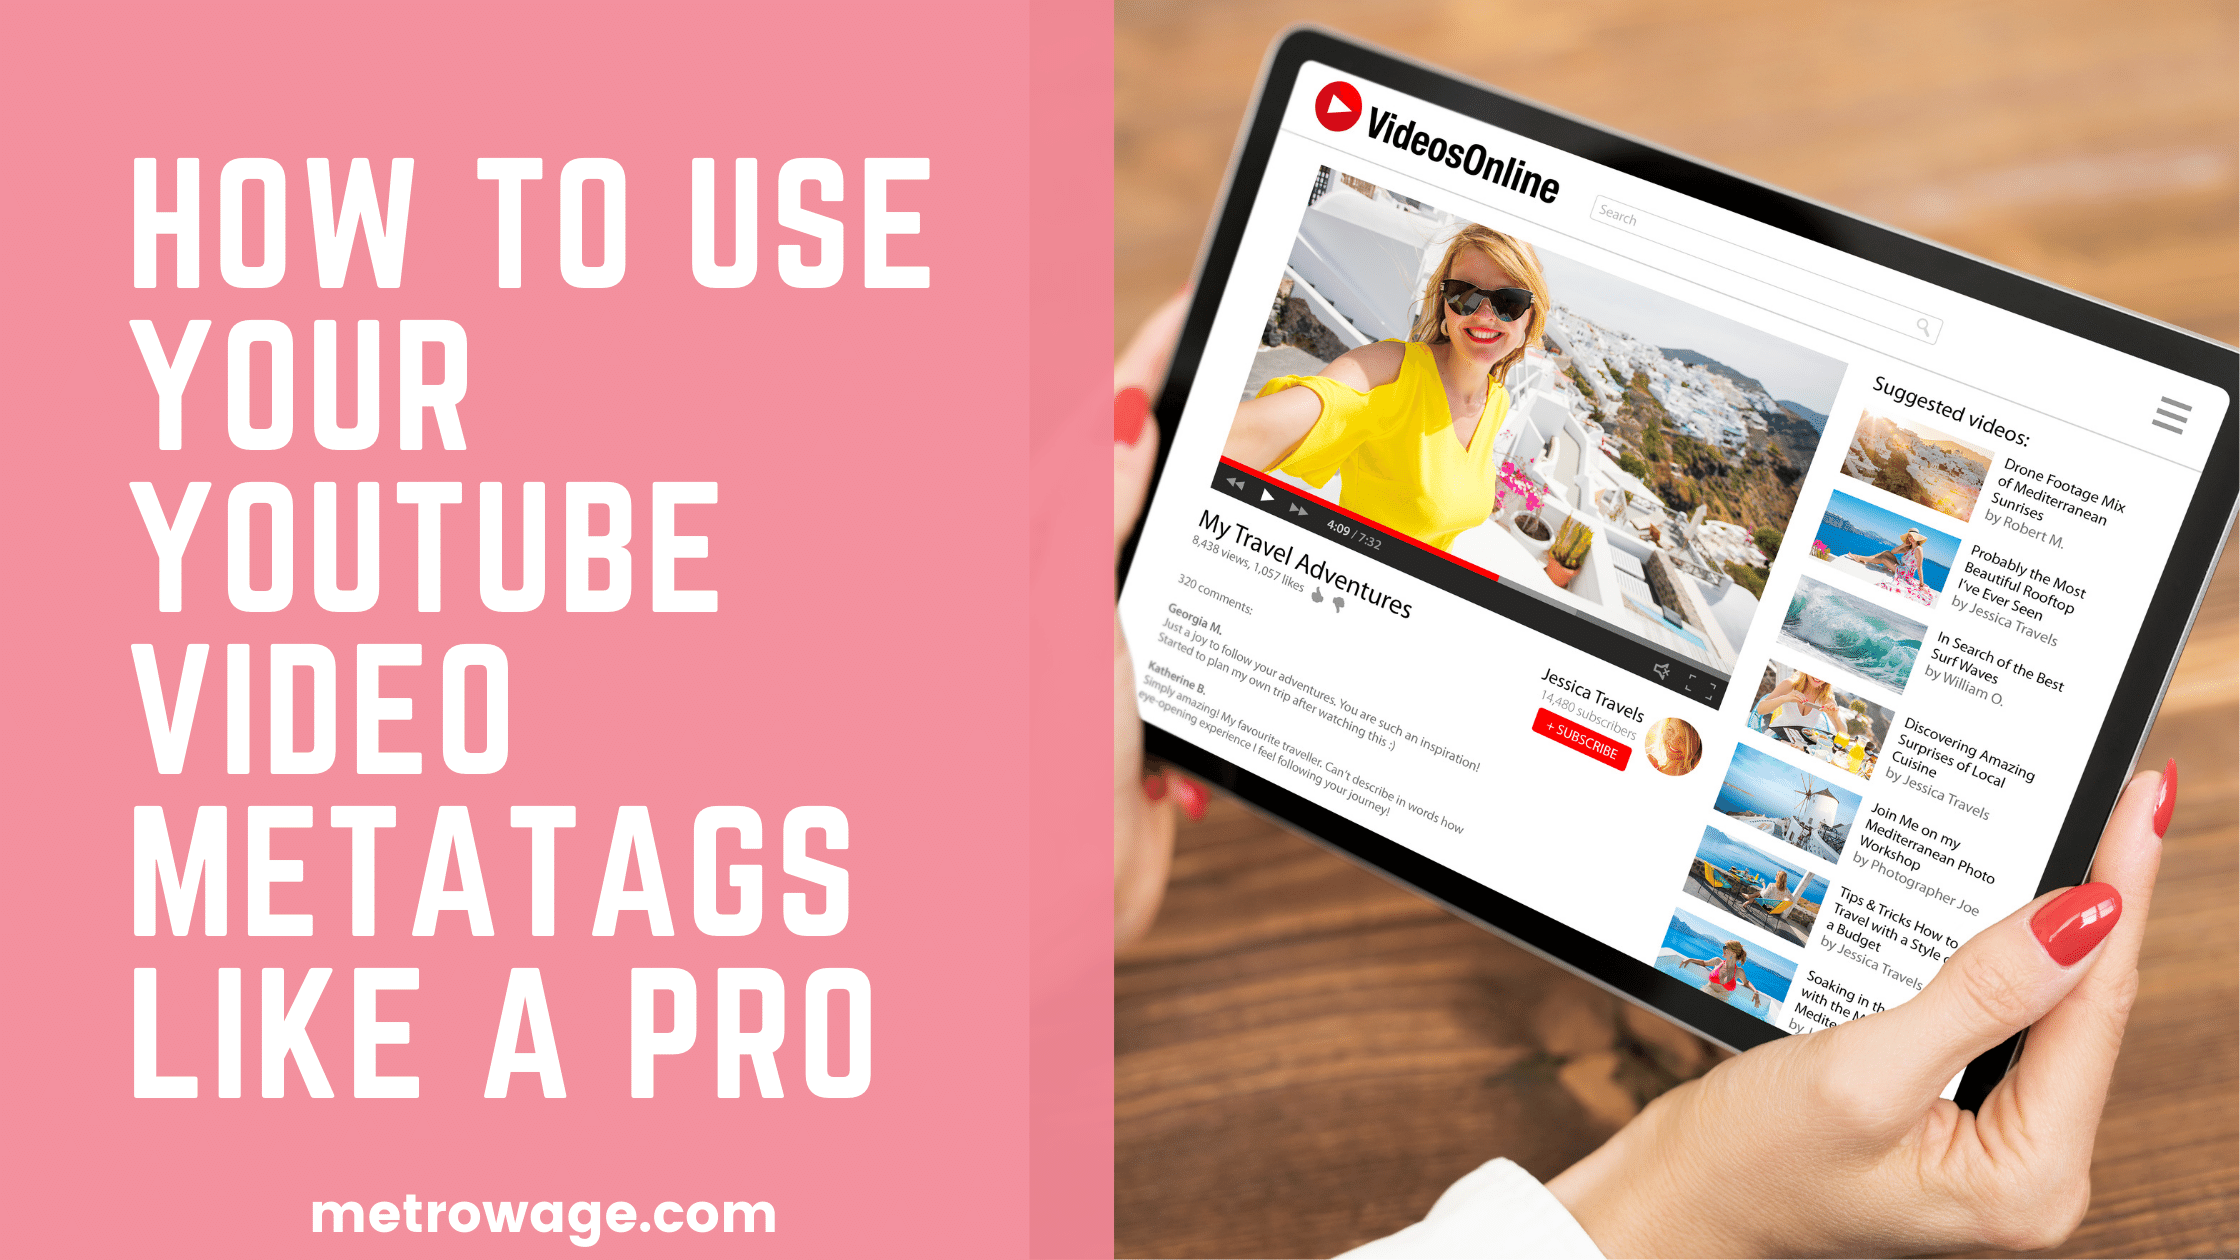 How To Use Your YouTube Video Metatags Like A Pro